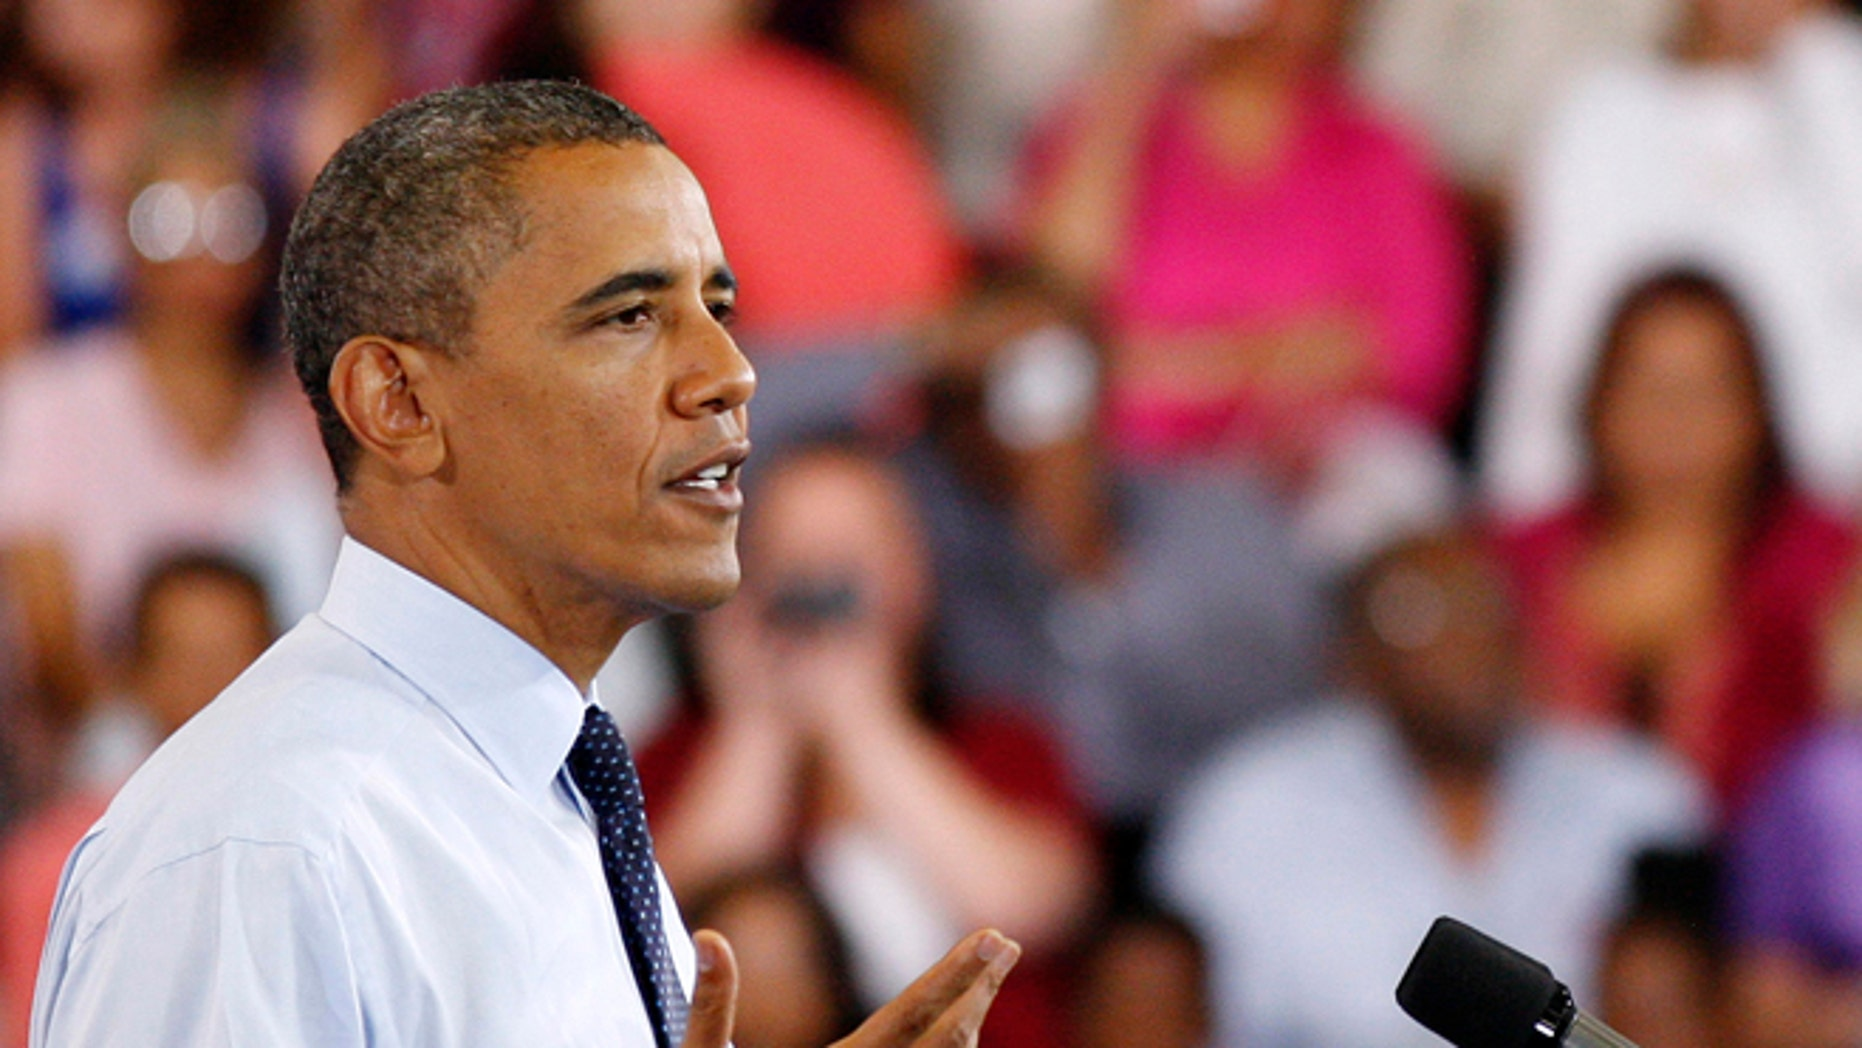 FILE: Aug. 22, 2012: President Obama speaks during a campaign stop in north Las Vegas, Nevada.